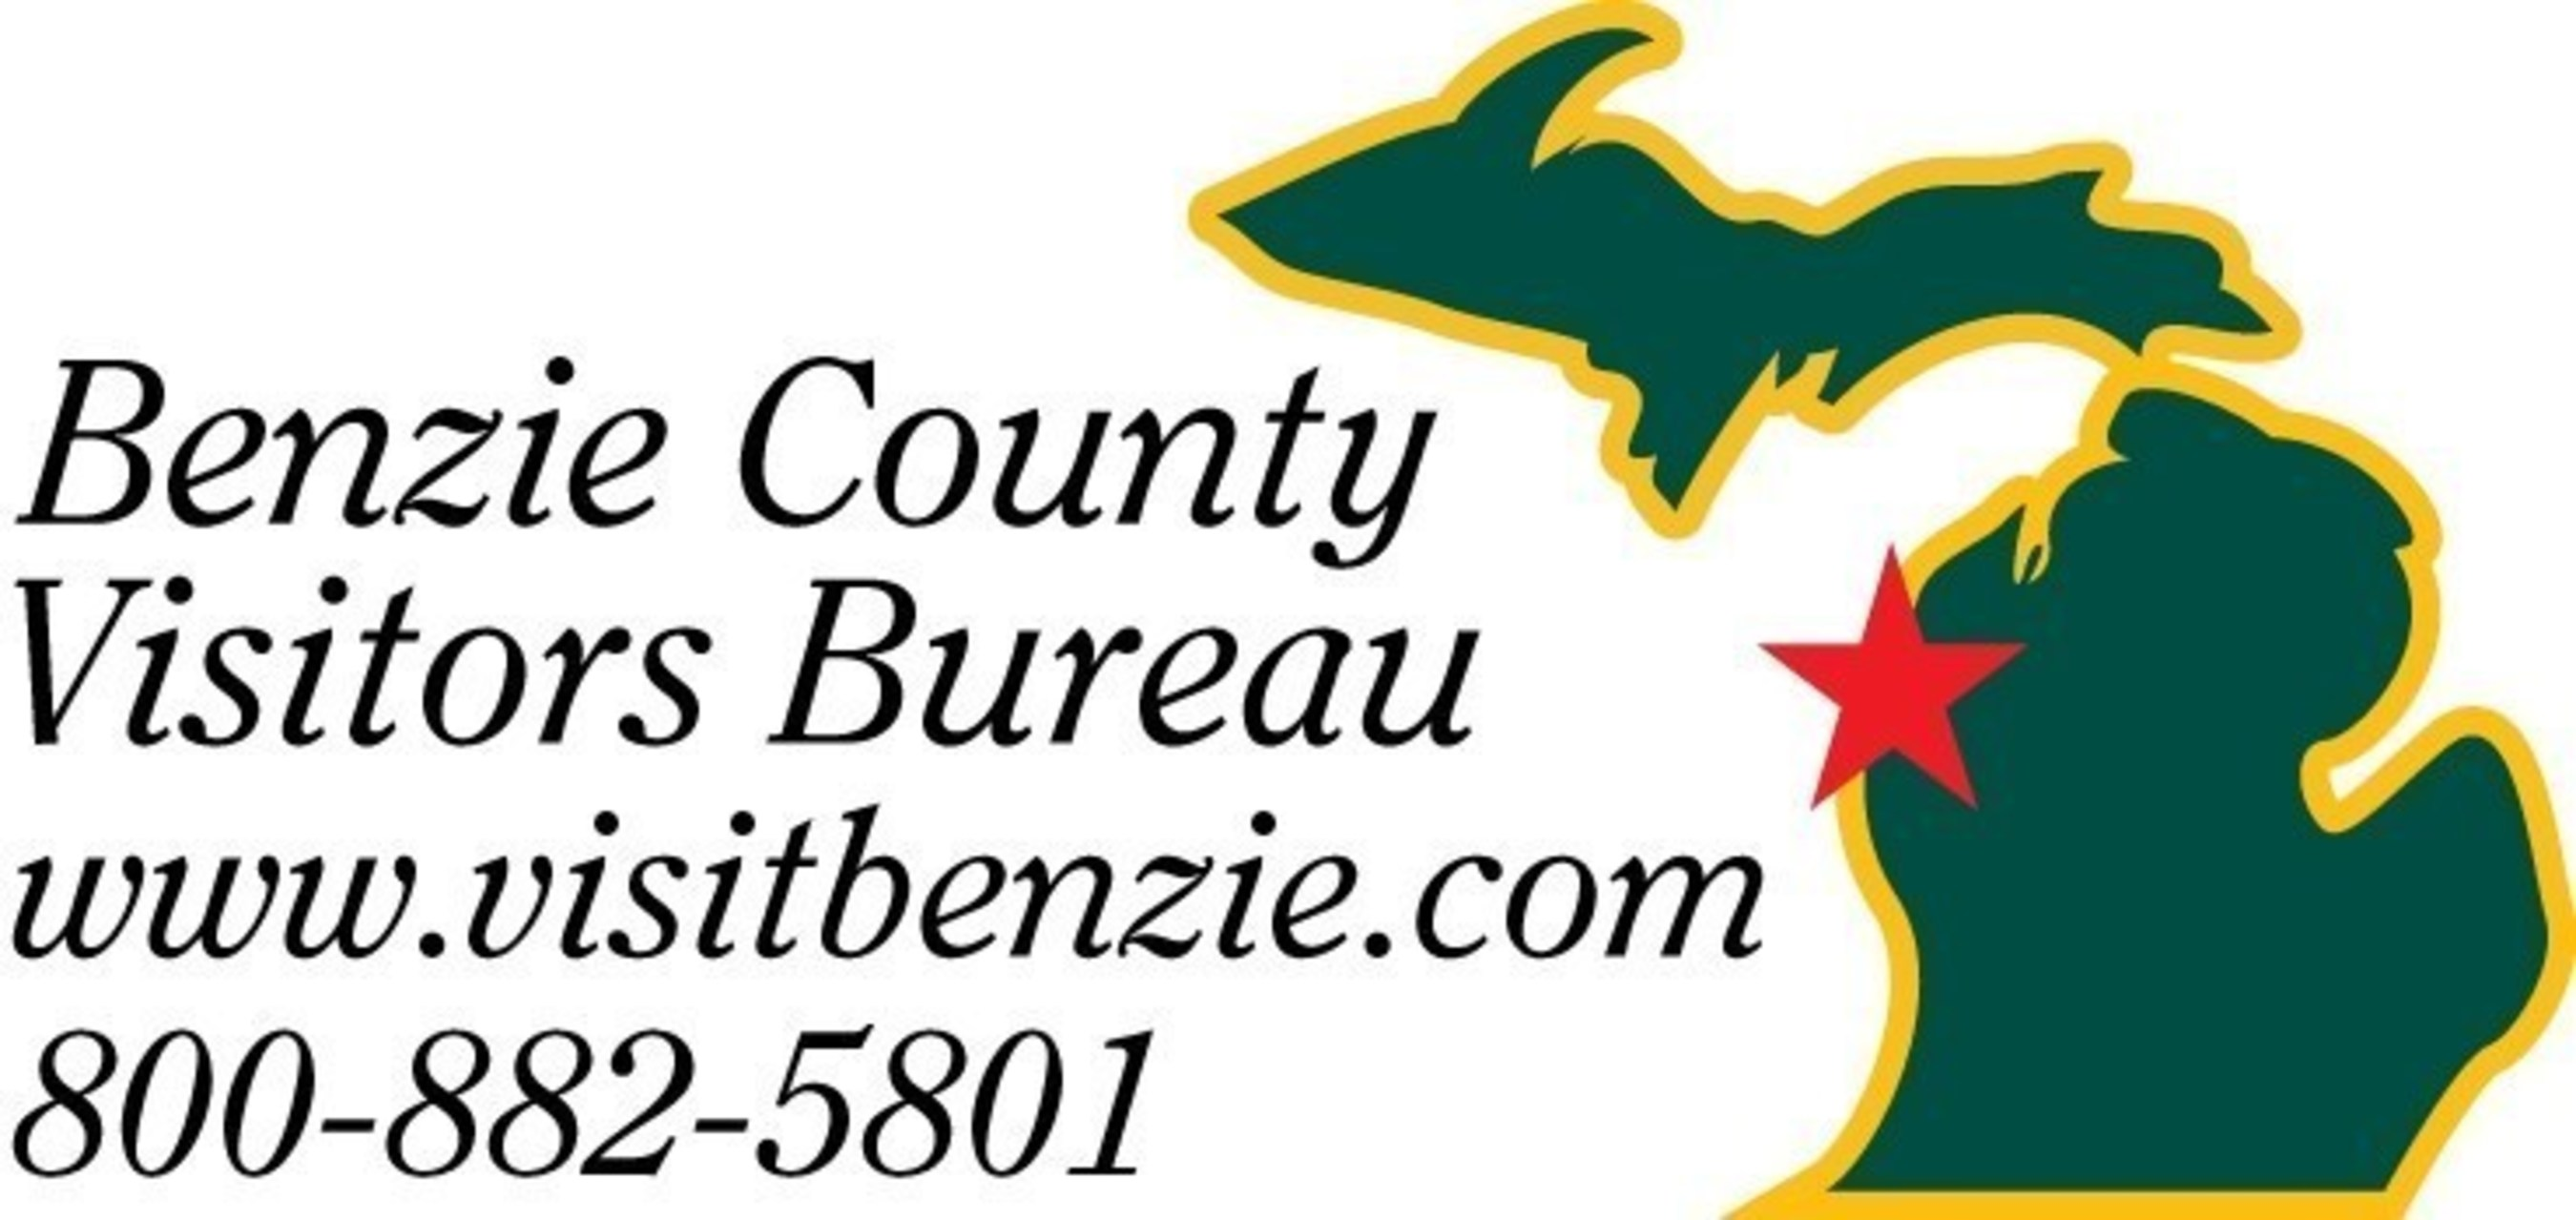 Benzie County in Northern Michigan Celebrates New Pure Michigan Scenic Byway, M-22, and Invites Visitors to experience one of the most beautiful Color Tours in the United